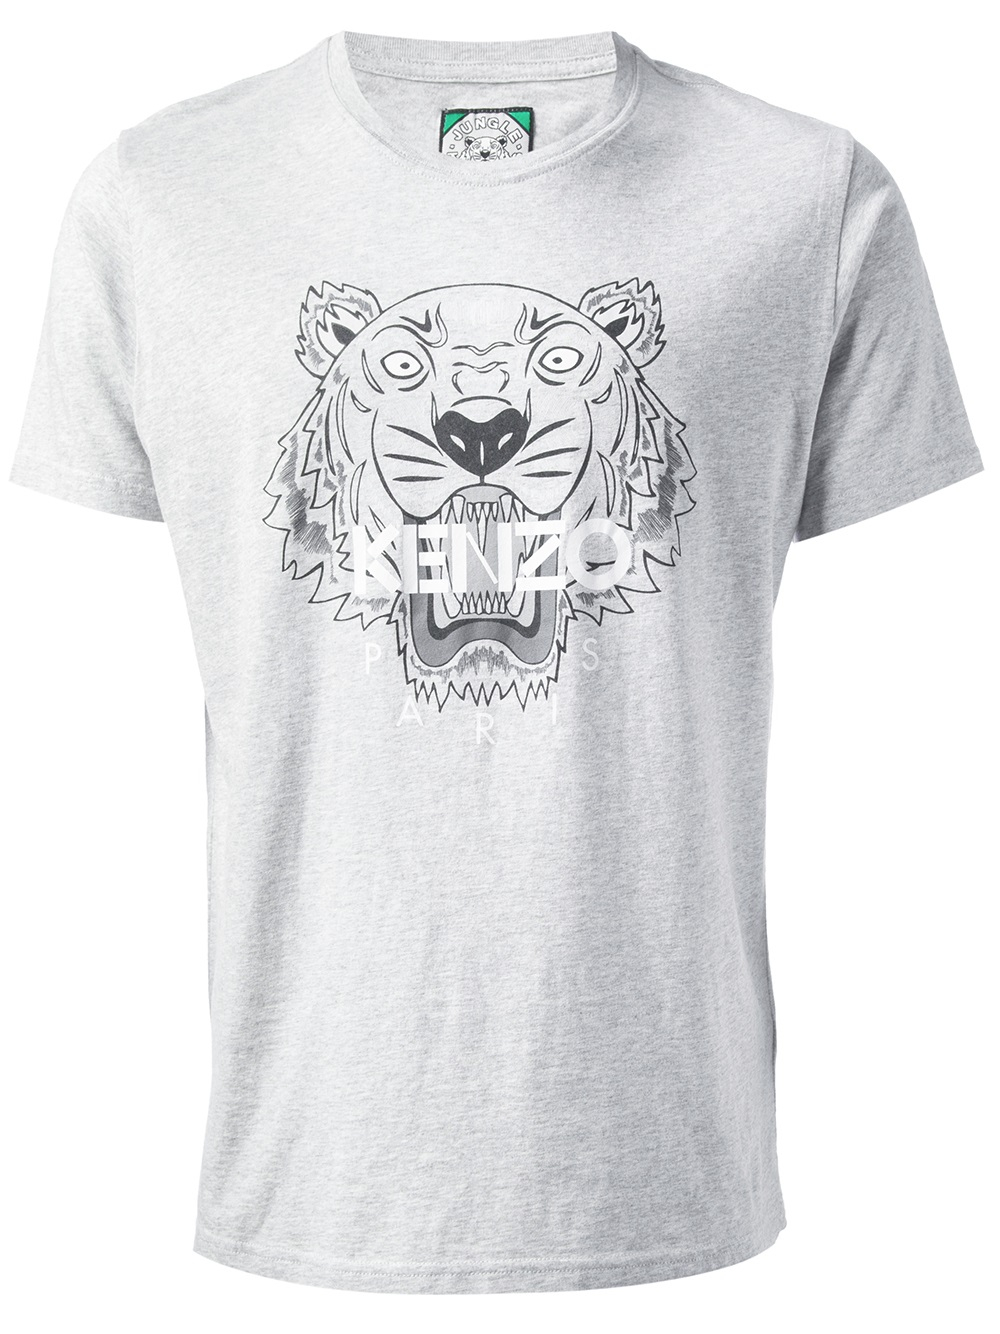 6d0126c5 KENZO Tiger Print T-shirt in Gray for Men - Lyst